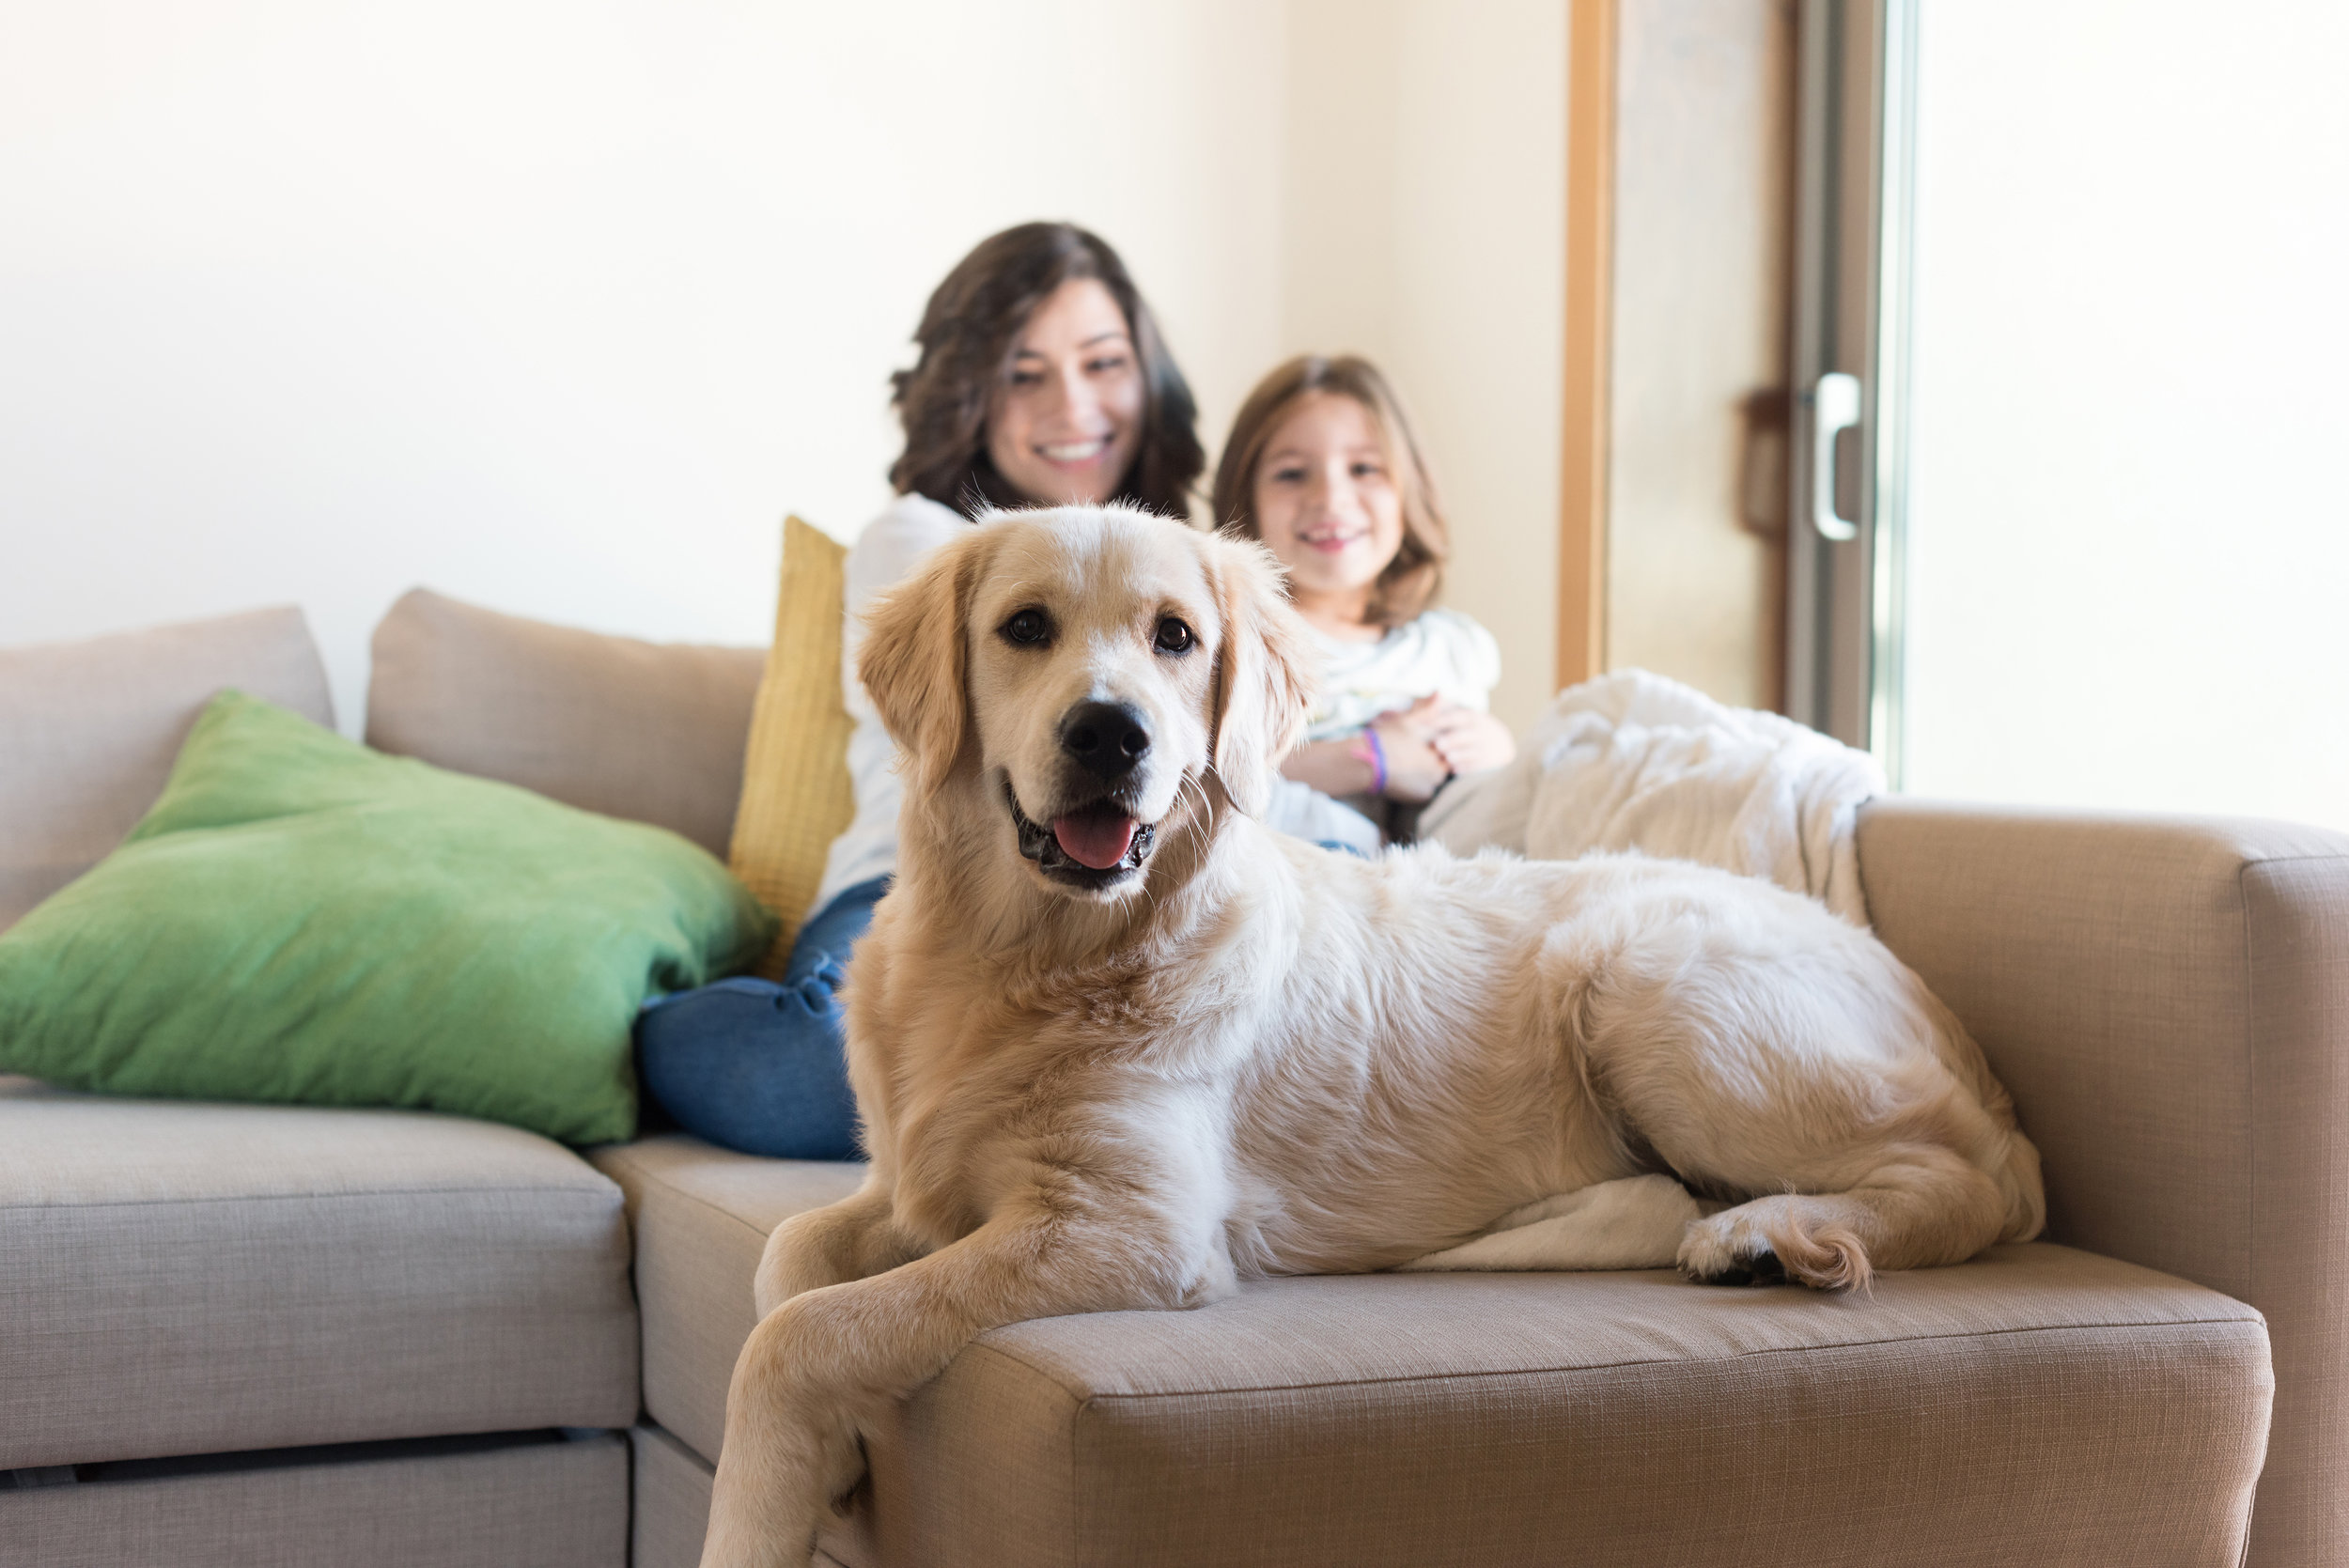 Call Our Office At 720.350.4353 - We can talk more specifically about your pet's health and how to schedule a free consultation.